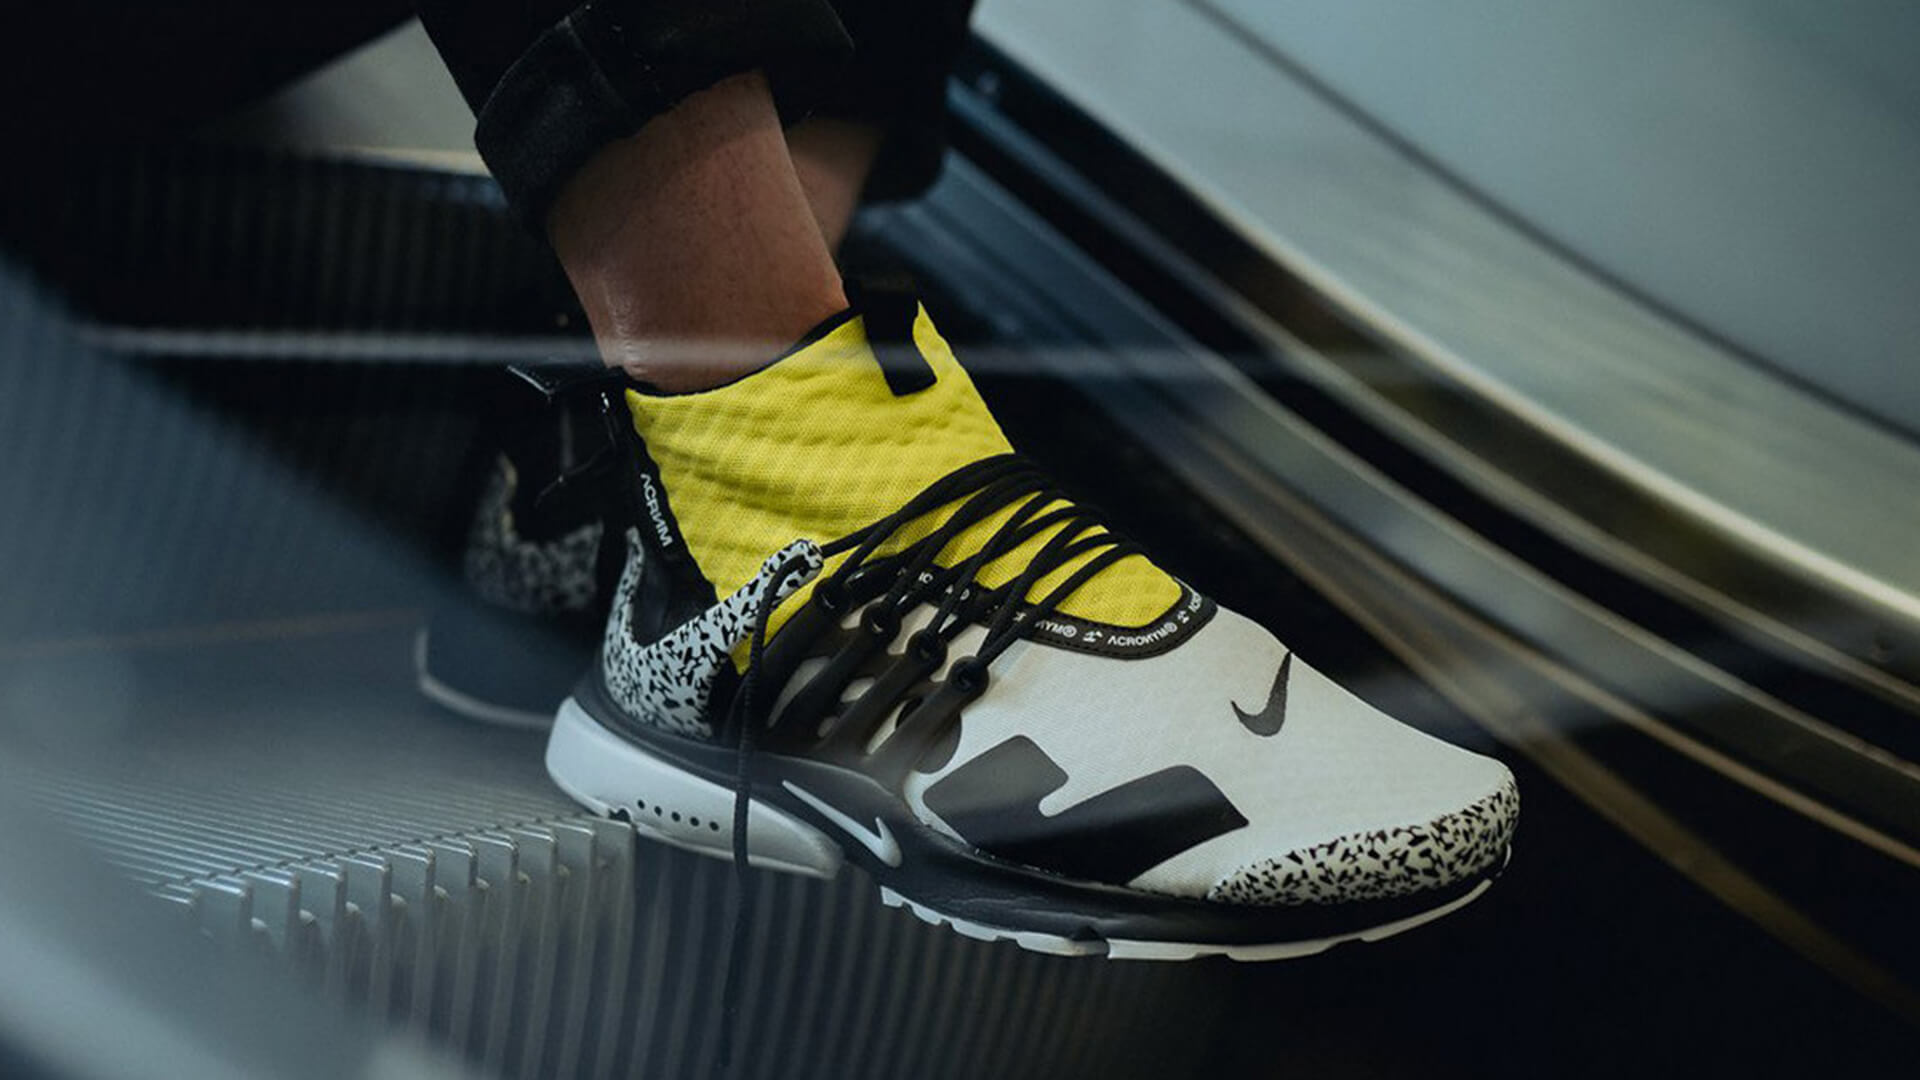 thoughts on superior quality picked up Latest ACRONYM x Nike Presto Trainer Releases & Next Drops | The ...